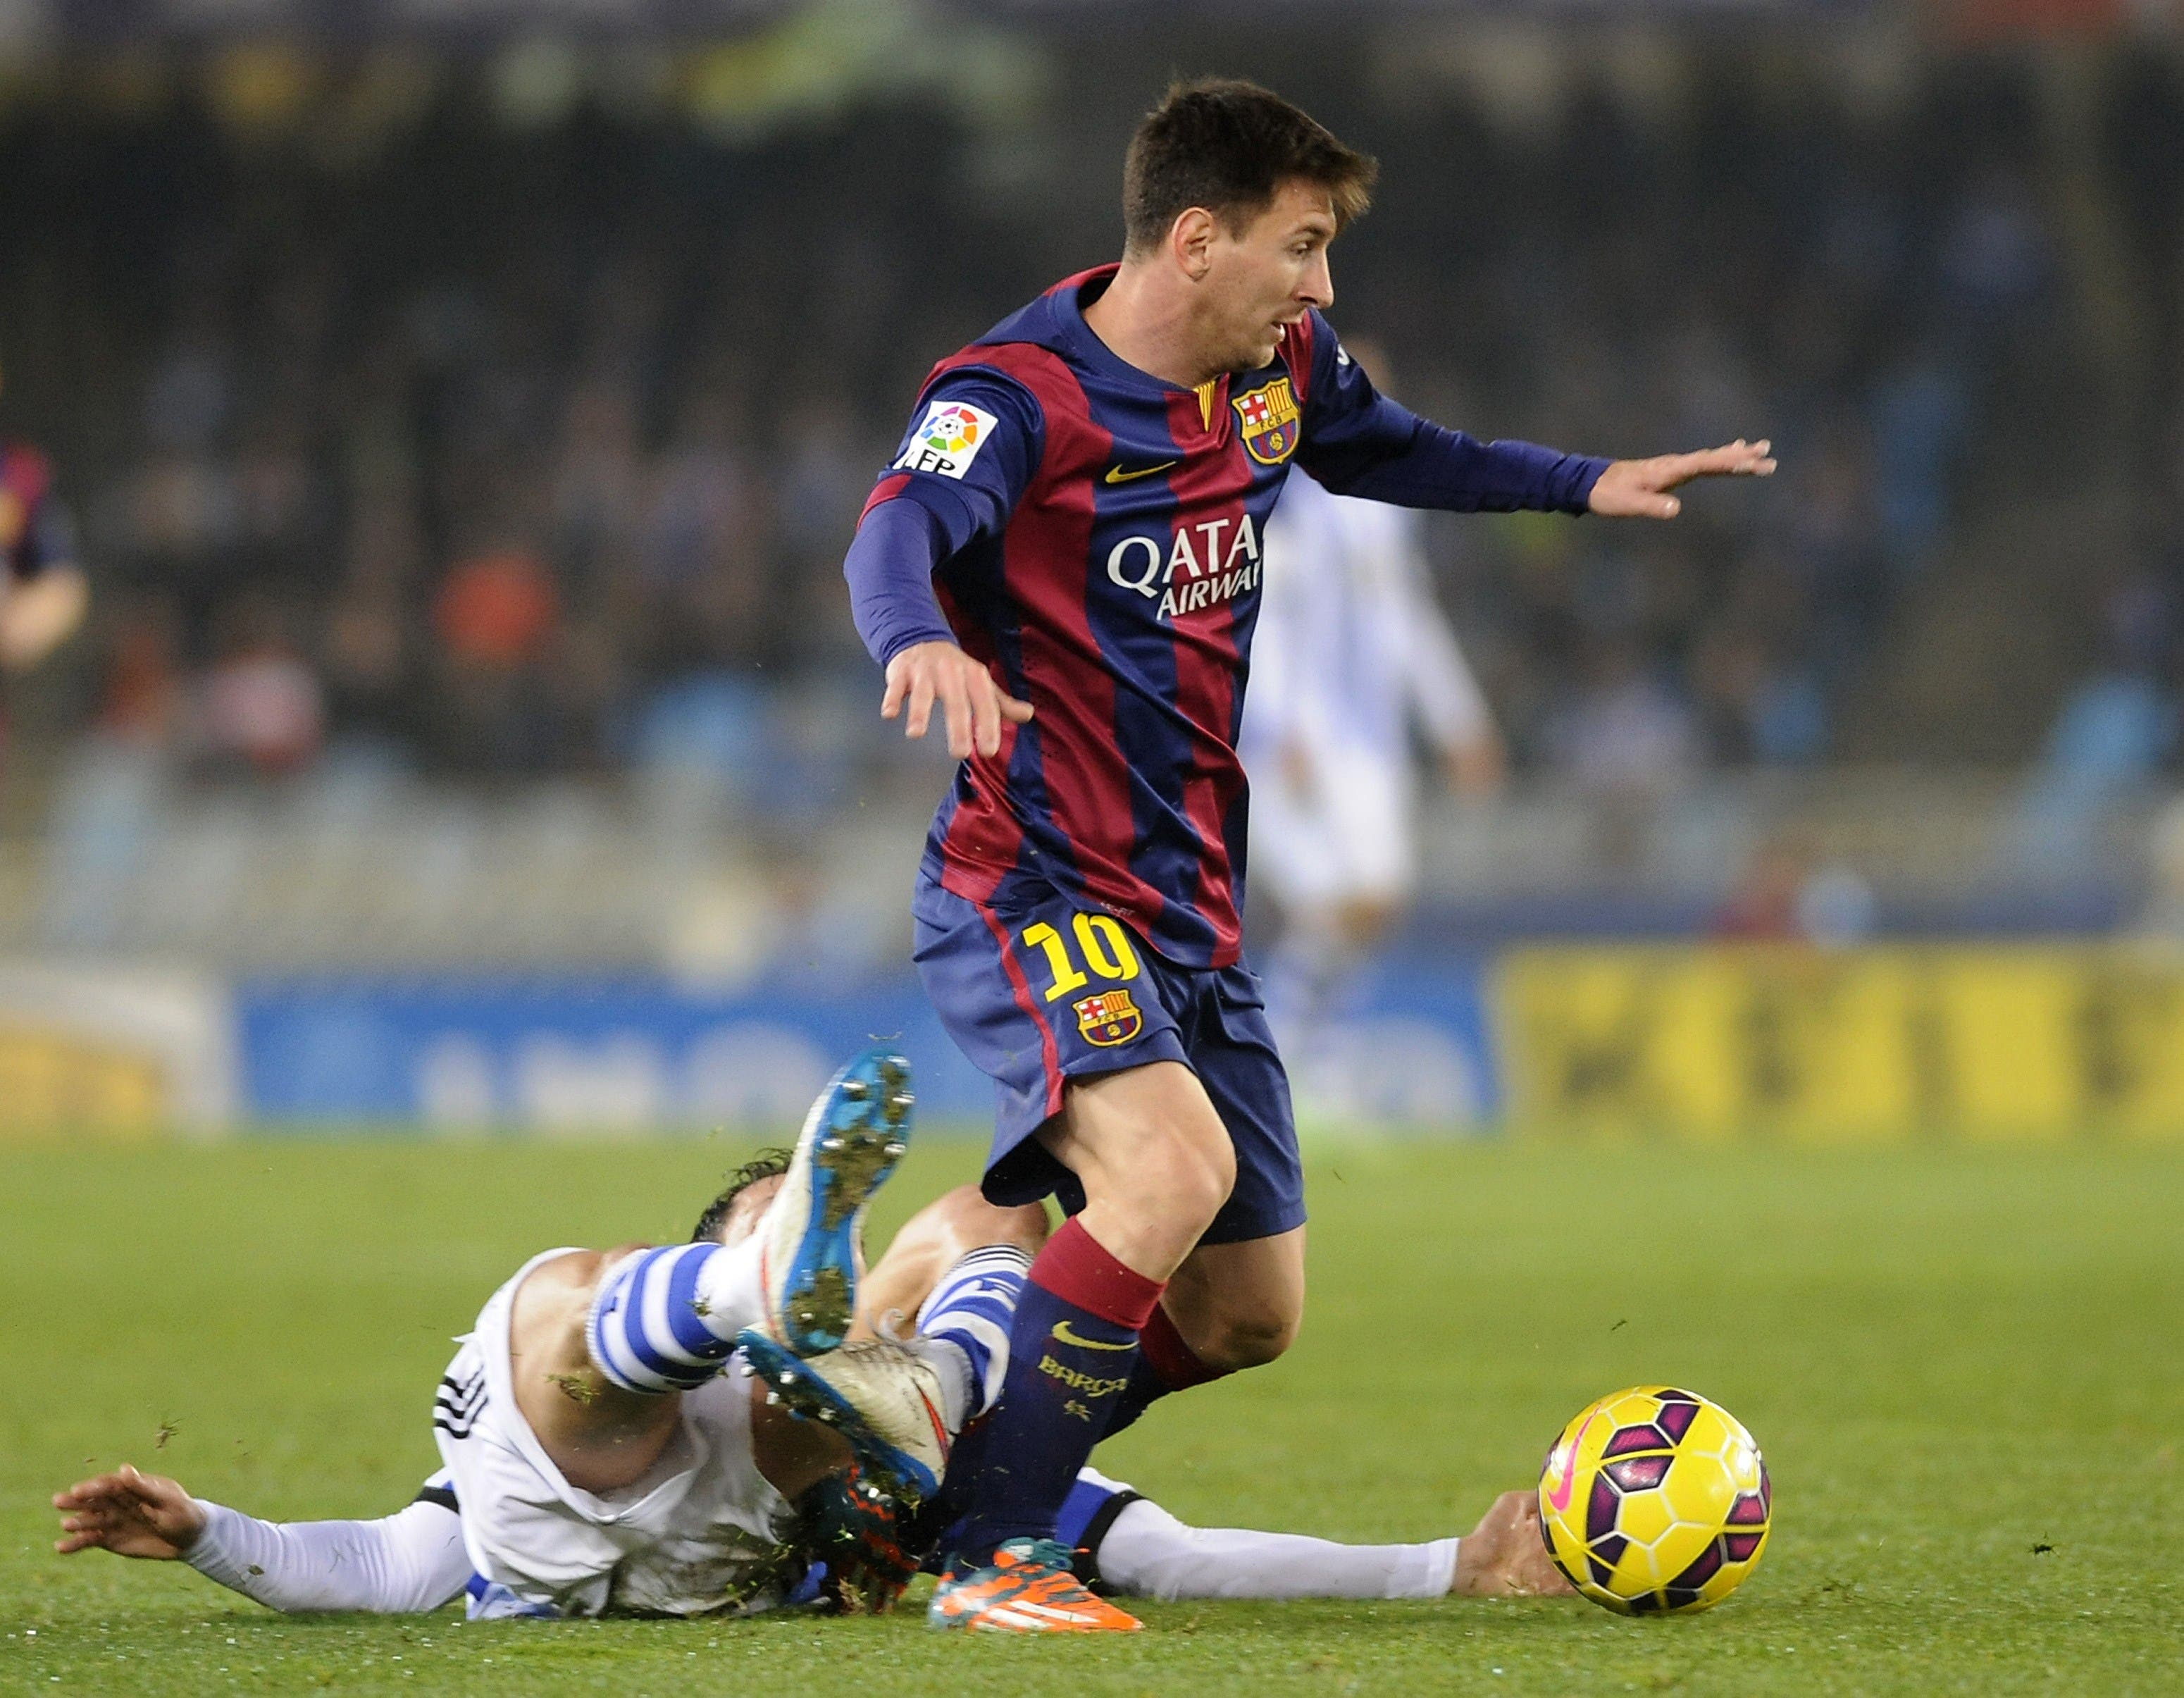 Barcelona's Argentinian forward Lionel Messi (R) vies with Real Sociedad's defender Alberto de la Bella (L) during the Spanish league football match Real Sociedad de Futbol vs FC Barcelona at the Anoeta stadium in San Sebastian on Jan.  4, 2015. (AFP)